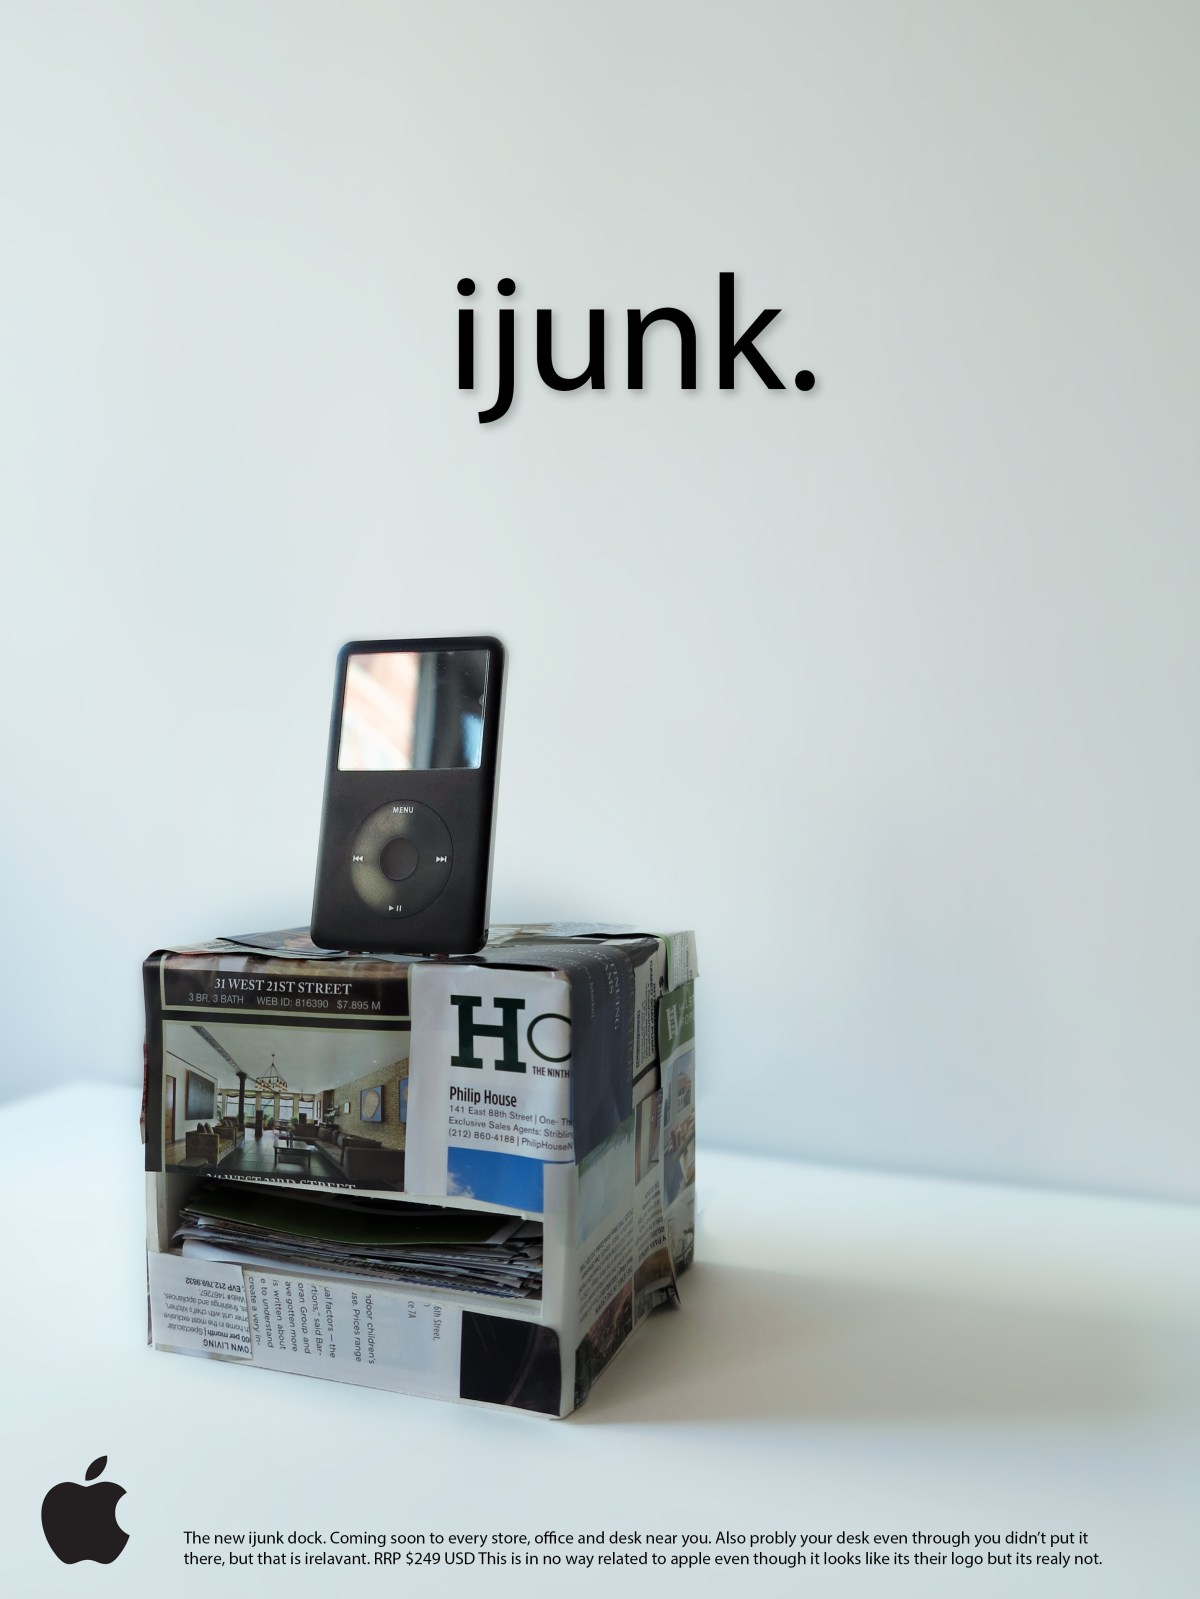 Junk-Mail Phone Case/Dock by Richard